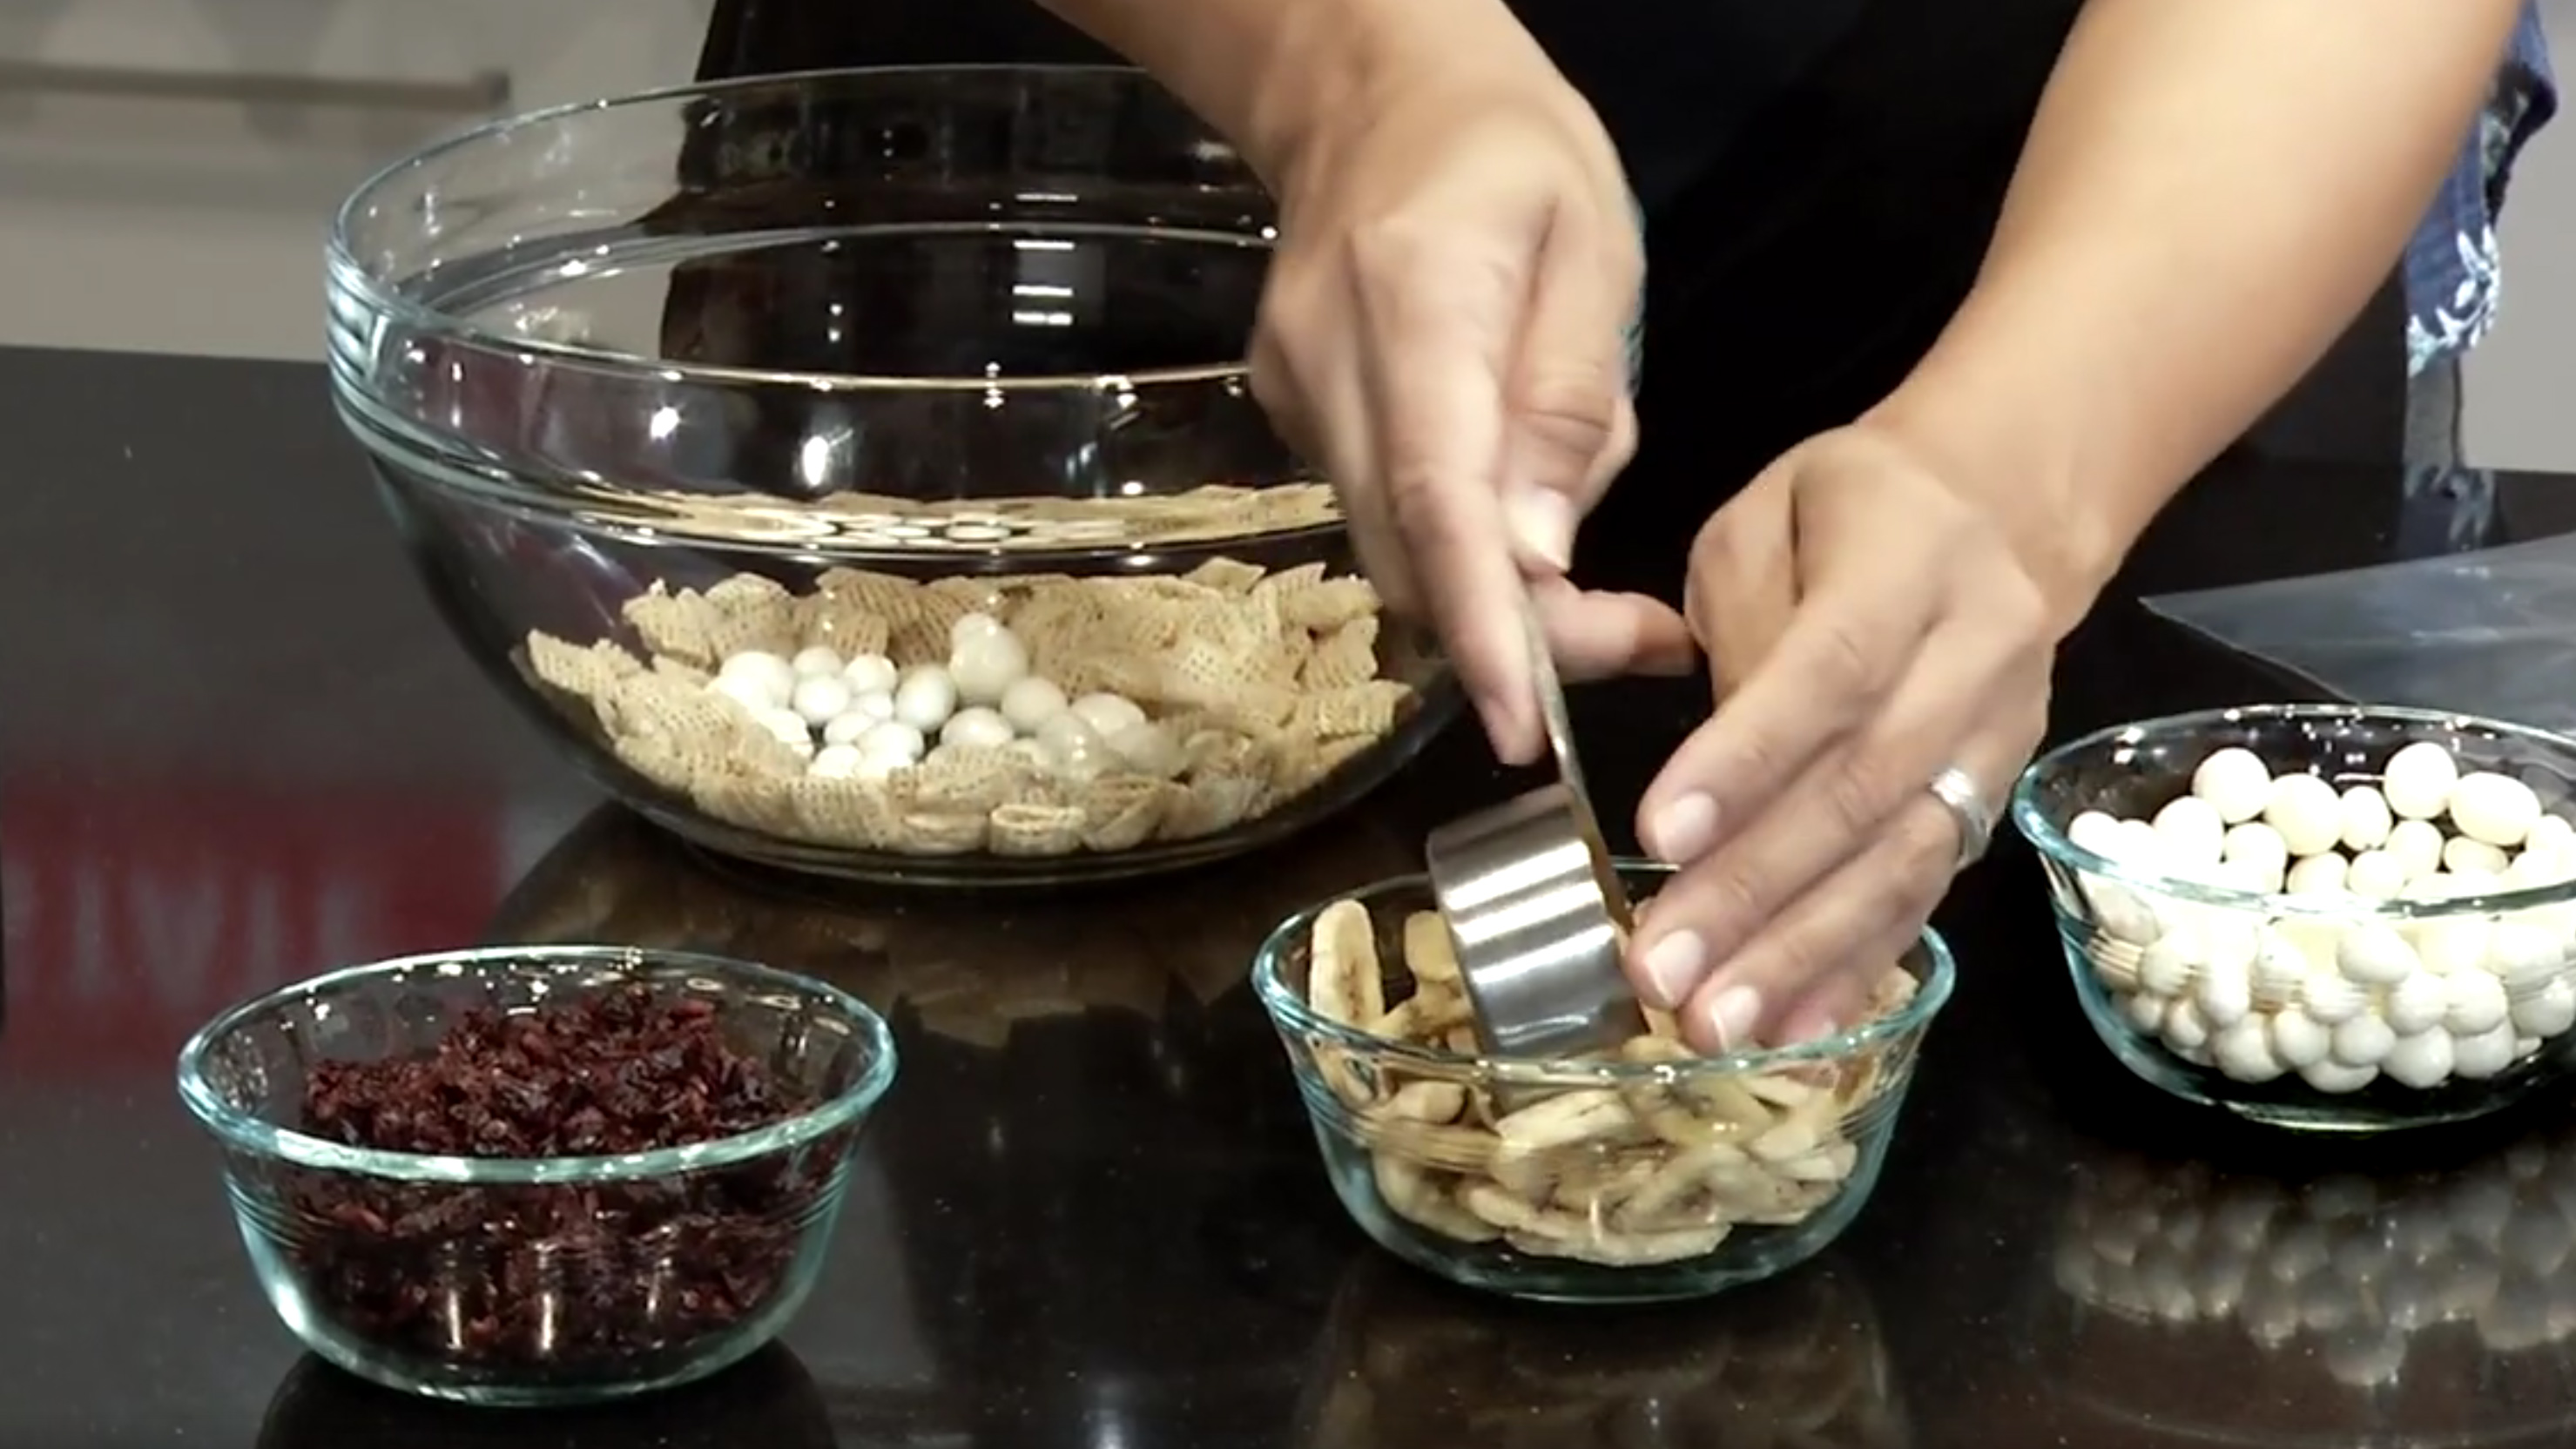 Close up of hands scooping out dried bananas, alongside glass bowls of other healthy snacks like raisins, to make a toss up snack bag.